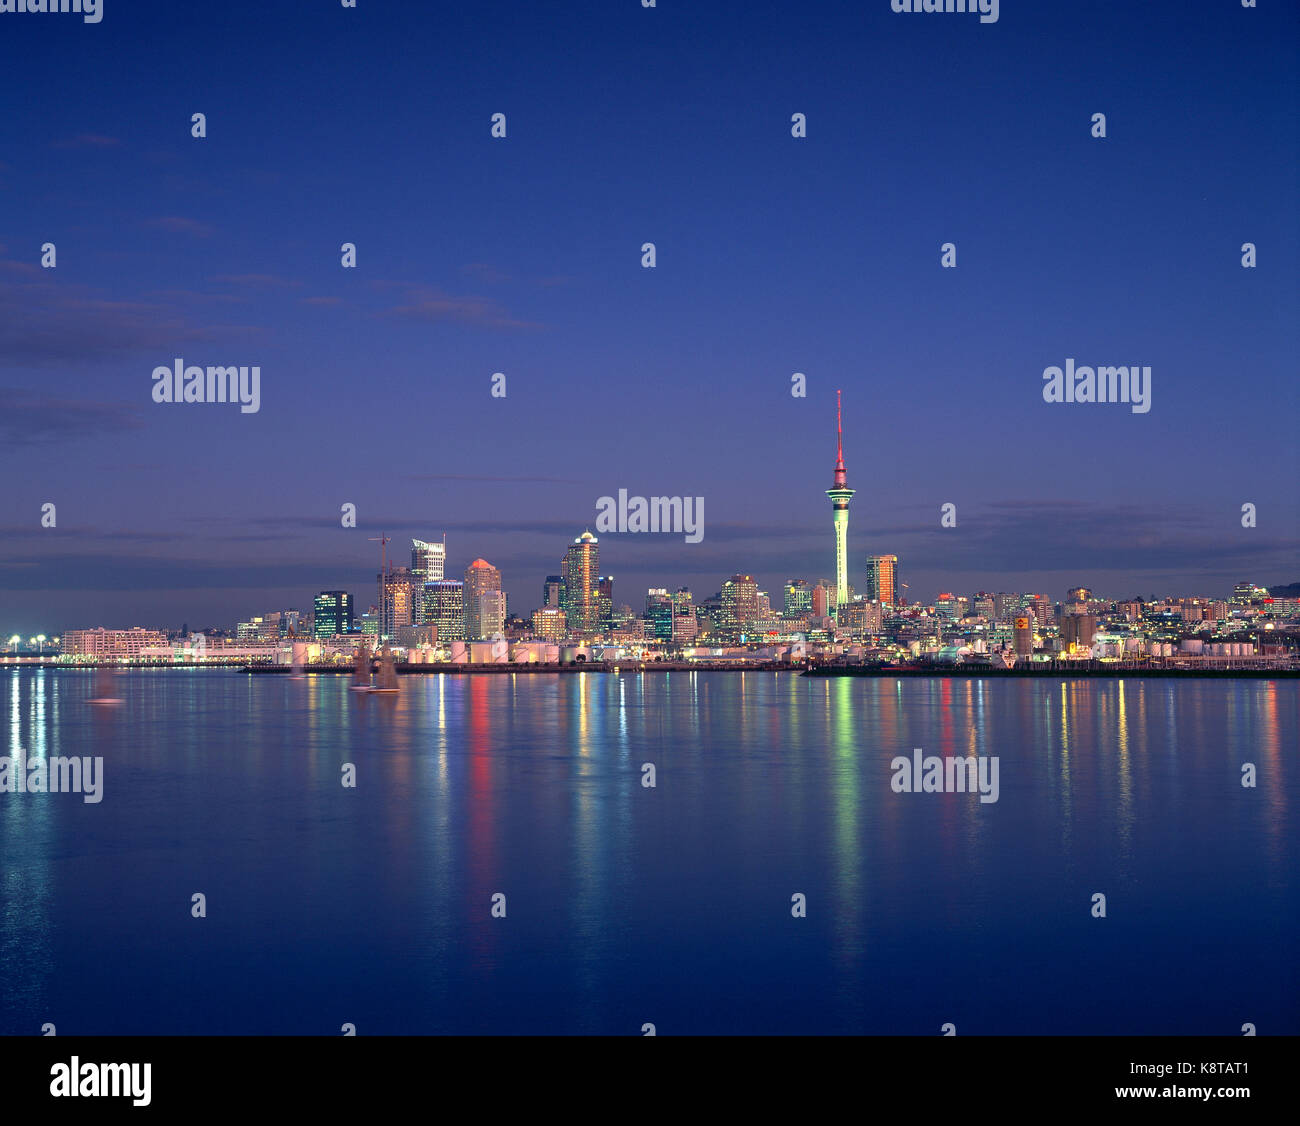 New Zealand. Auckland. City skyline from across the water at night. - Stock Image